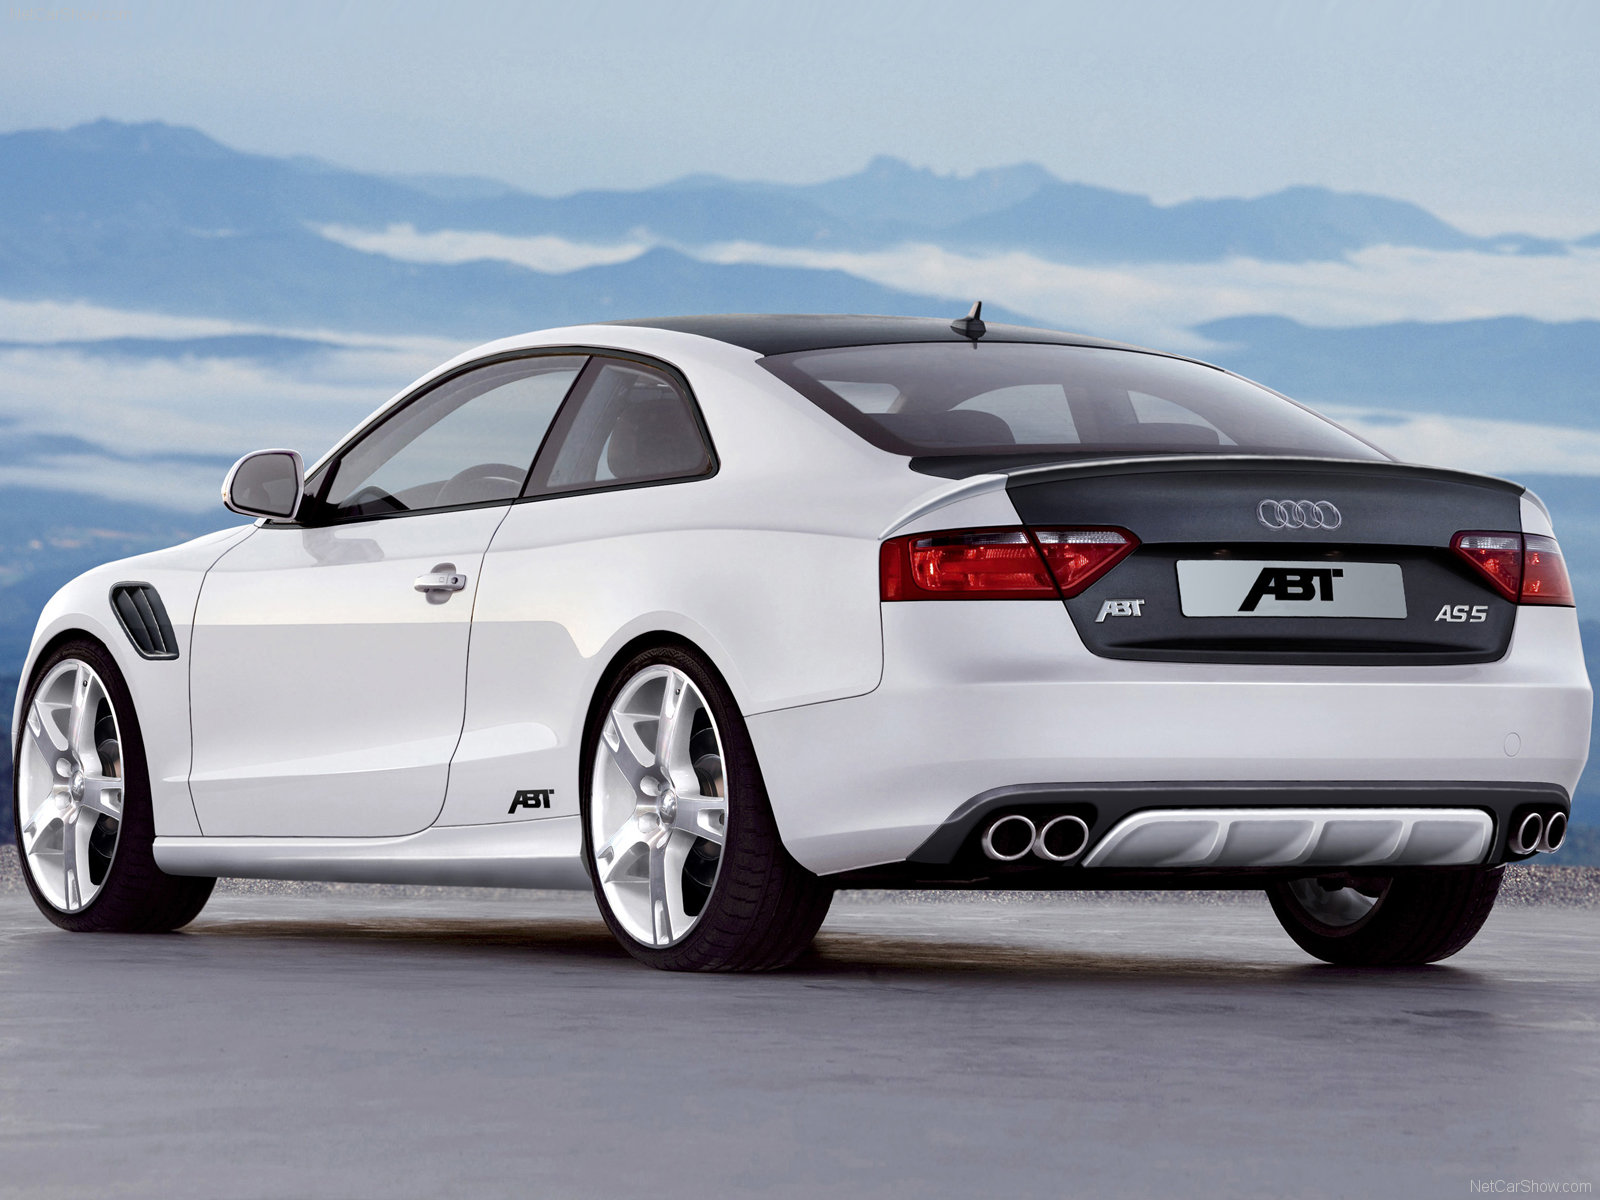 ABT Audi AS5 photos - PhotoGallery with 4 pics| CarsBase.com